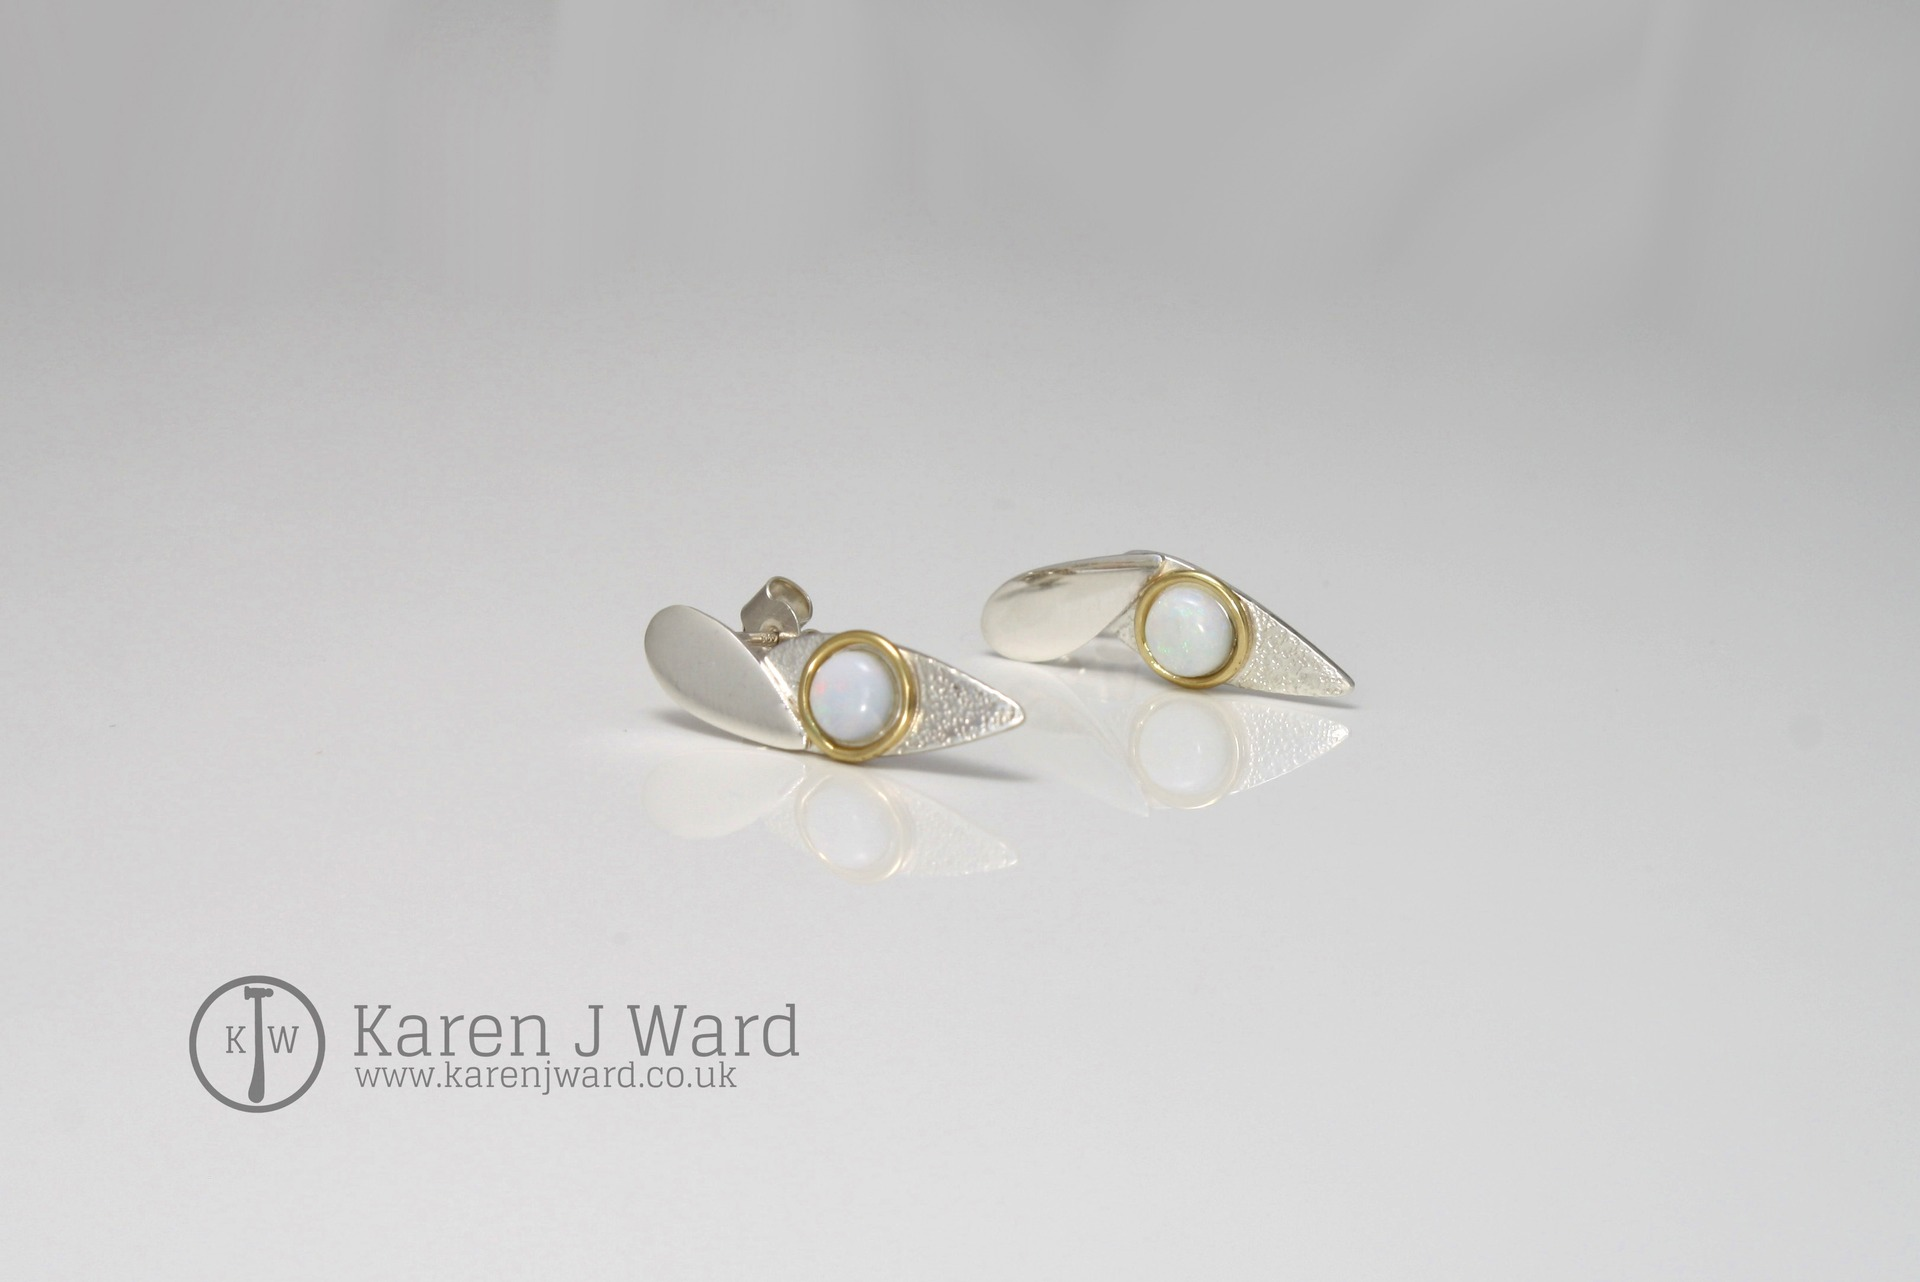 OPAL EARRINGS 18K GOLD STERLING SILVER AND OPAL A PERFECT COMPLEMENT FOR THE LABRADORITE AND OPAL PENDANT ANT